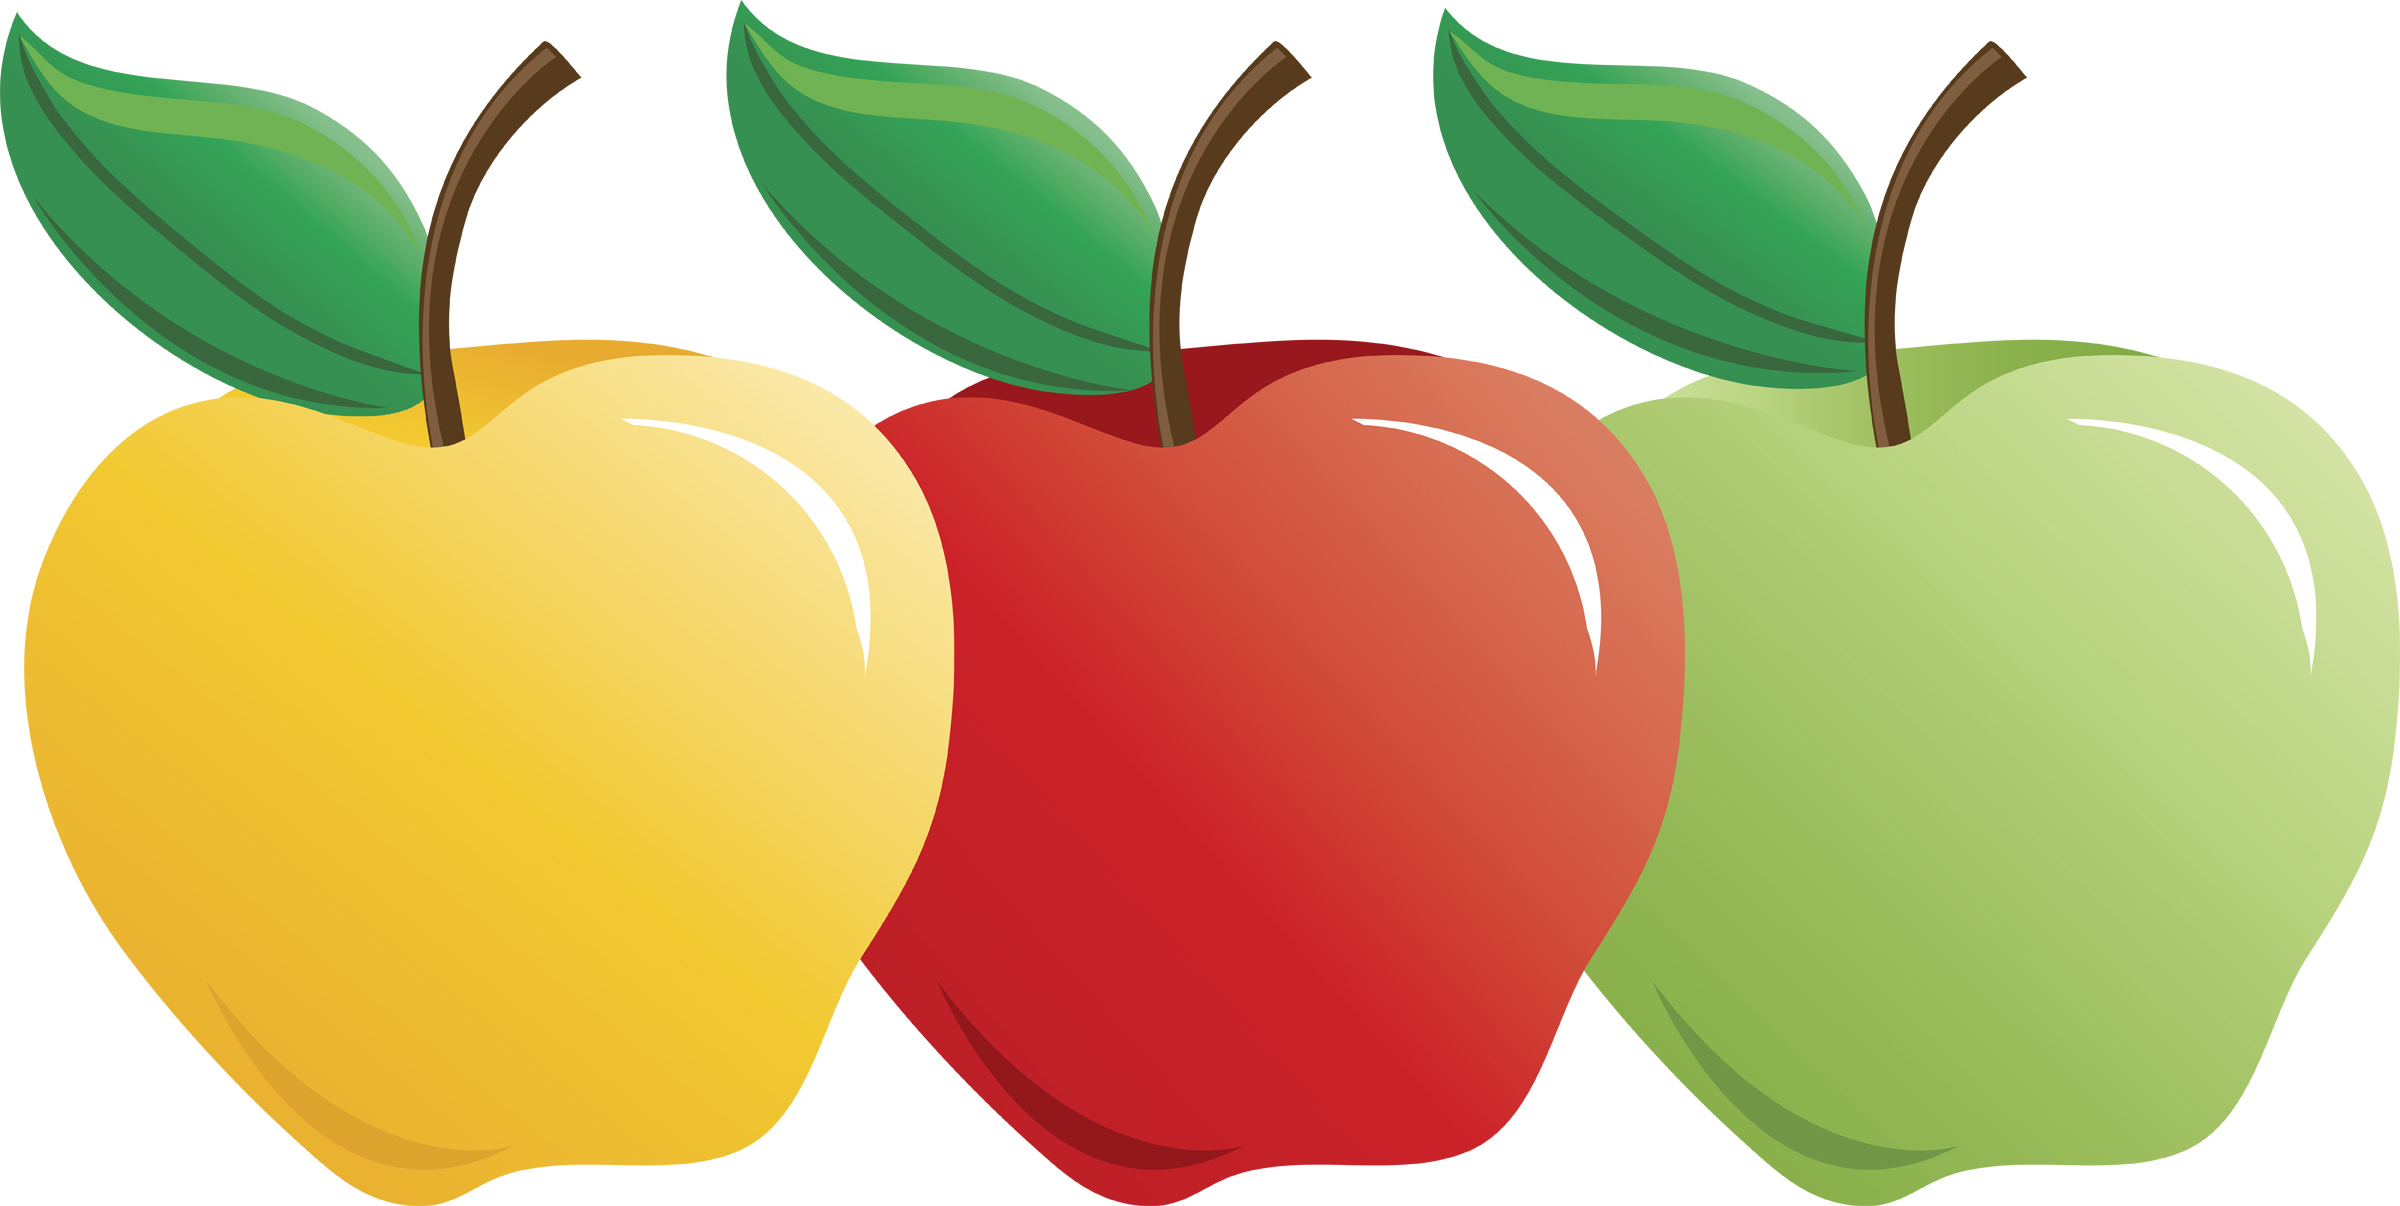 Apples to apples clipart.